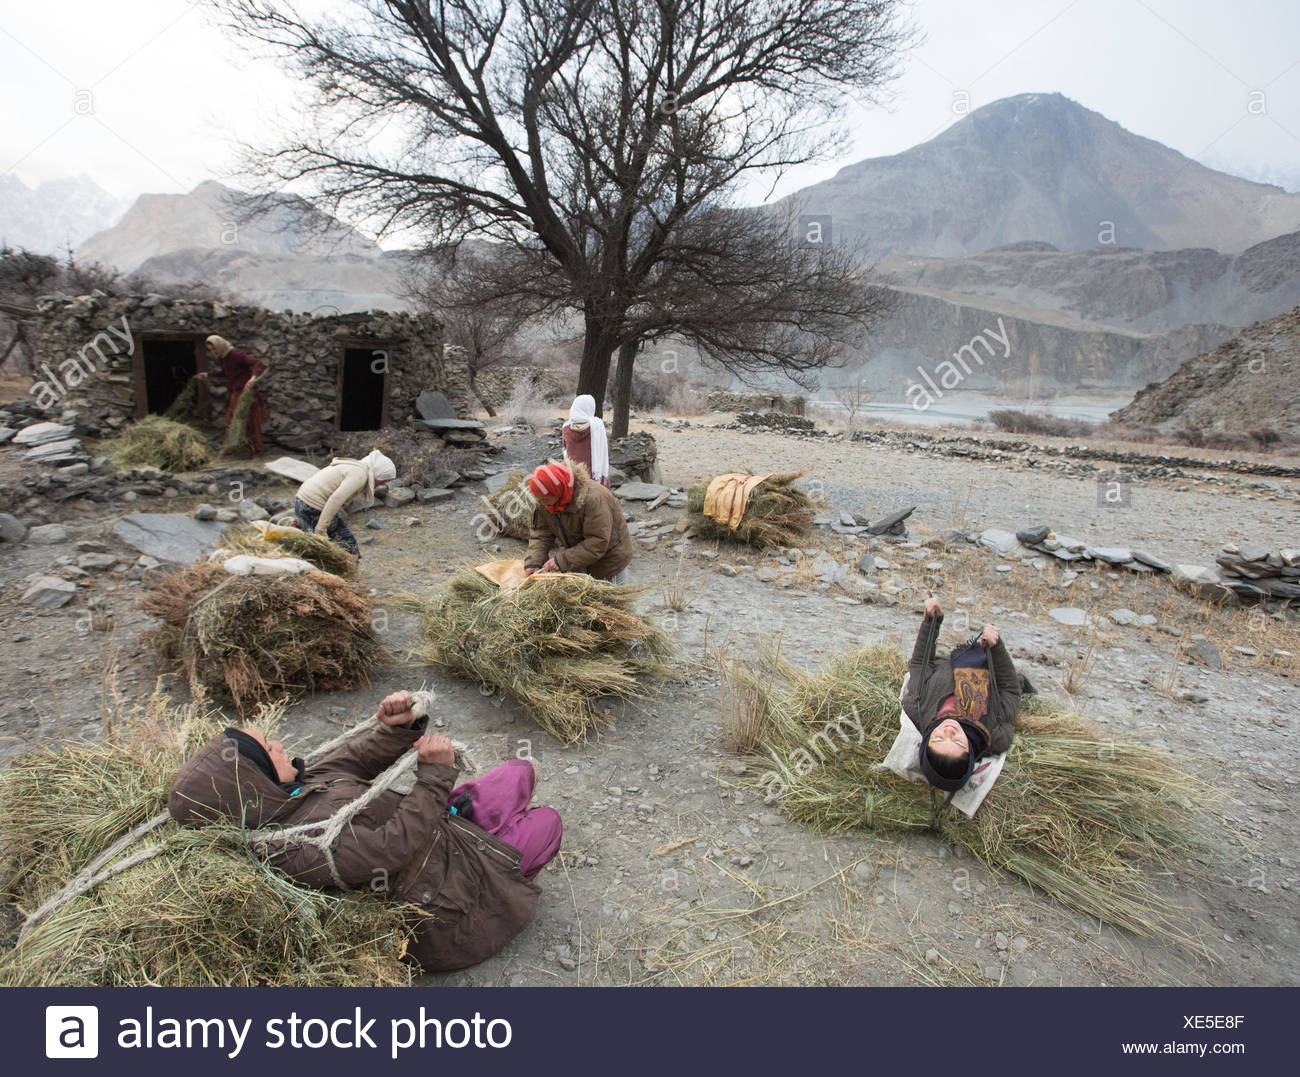 Women on their daily trek to get wood for cooking and heating and hay to feed their livestock, a two hour walk. Stock Photo